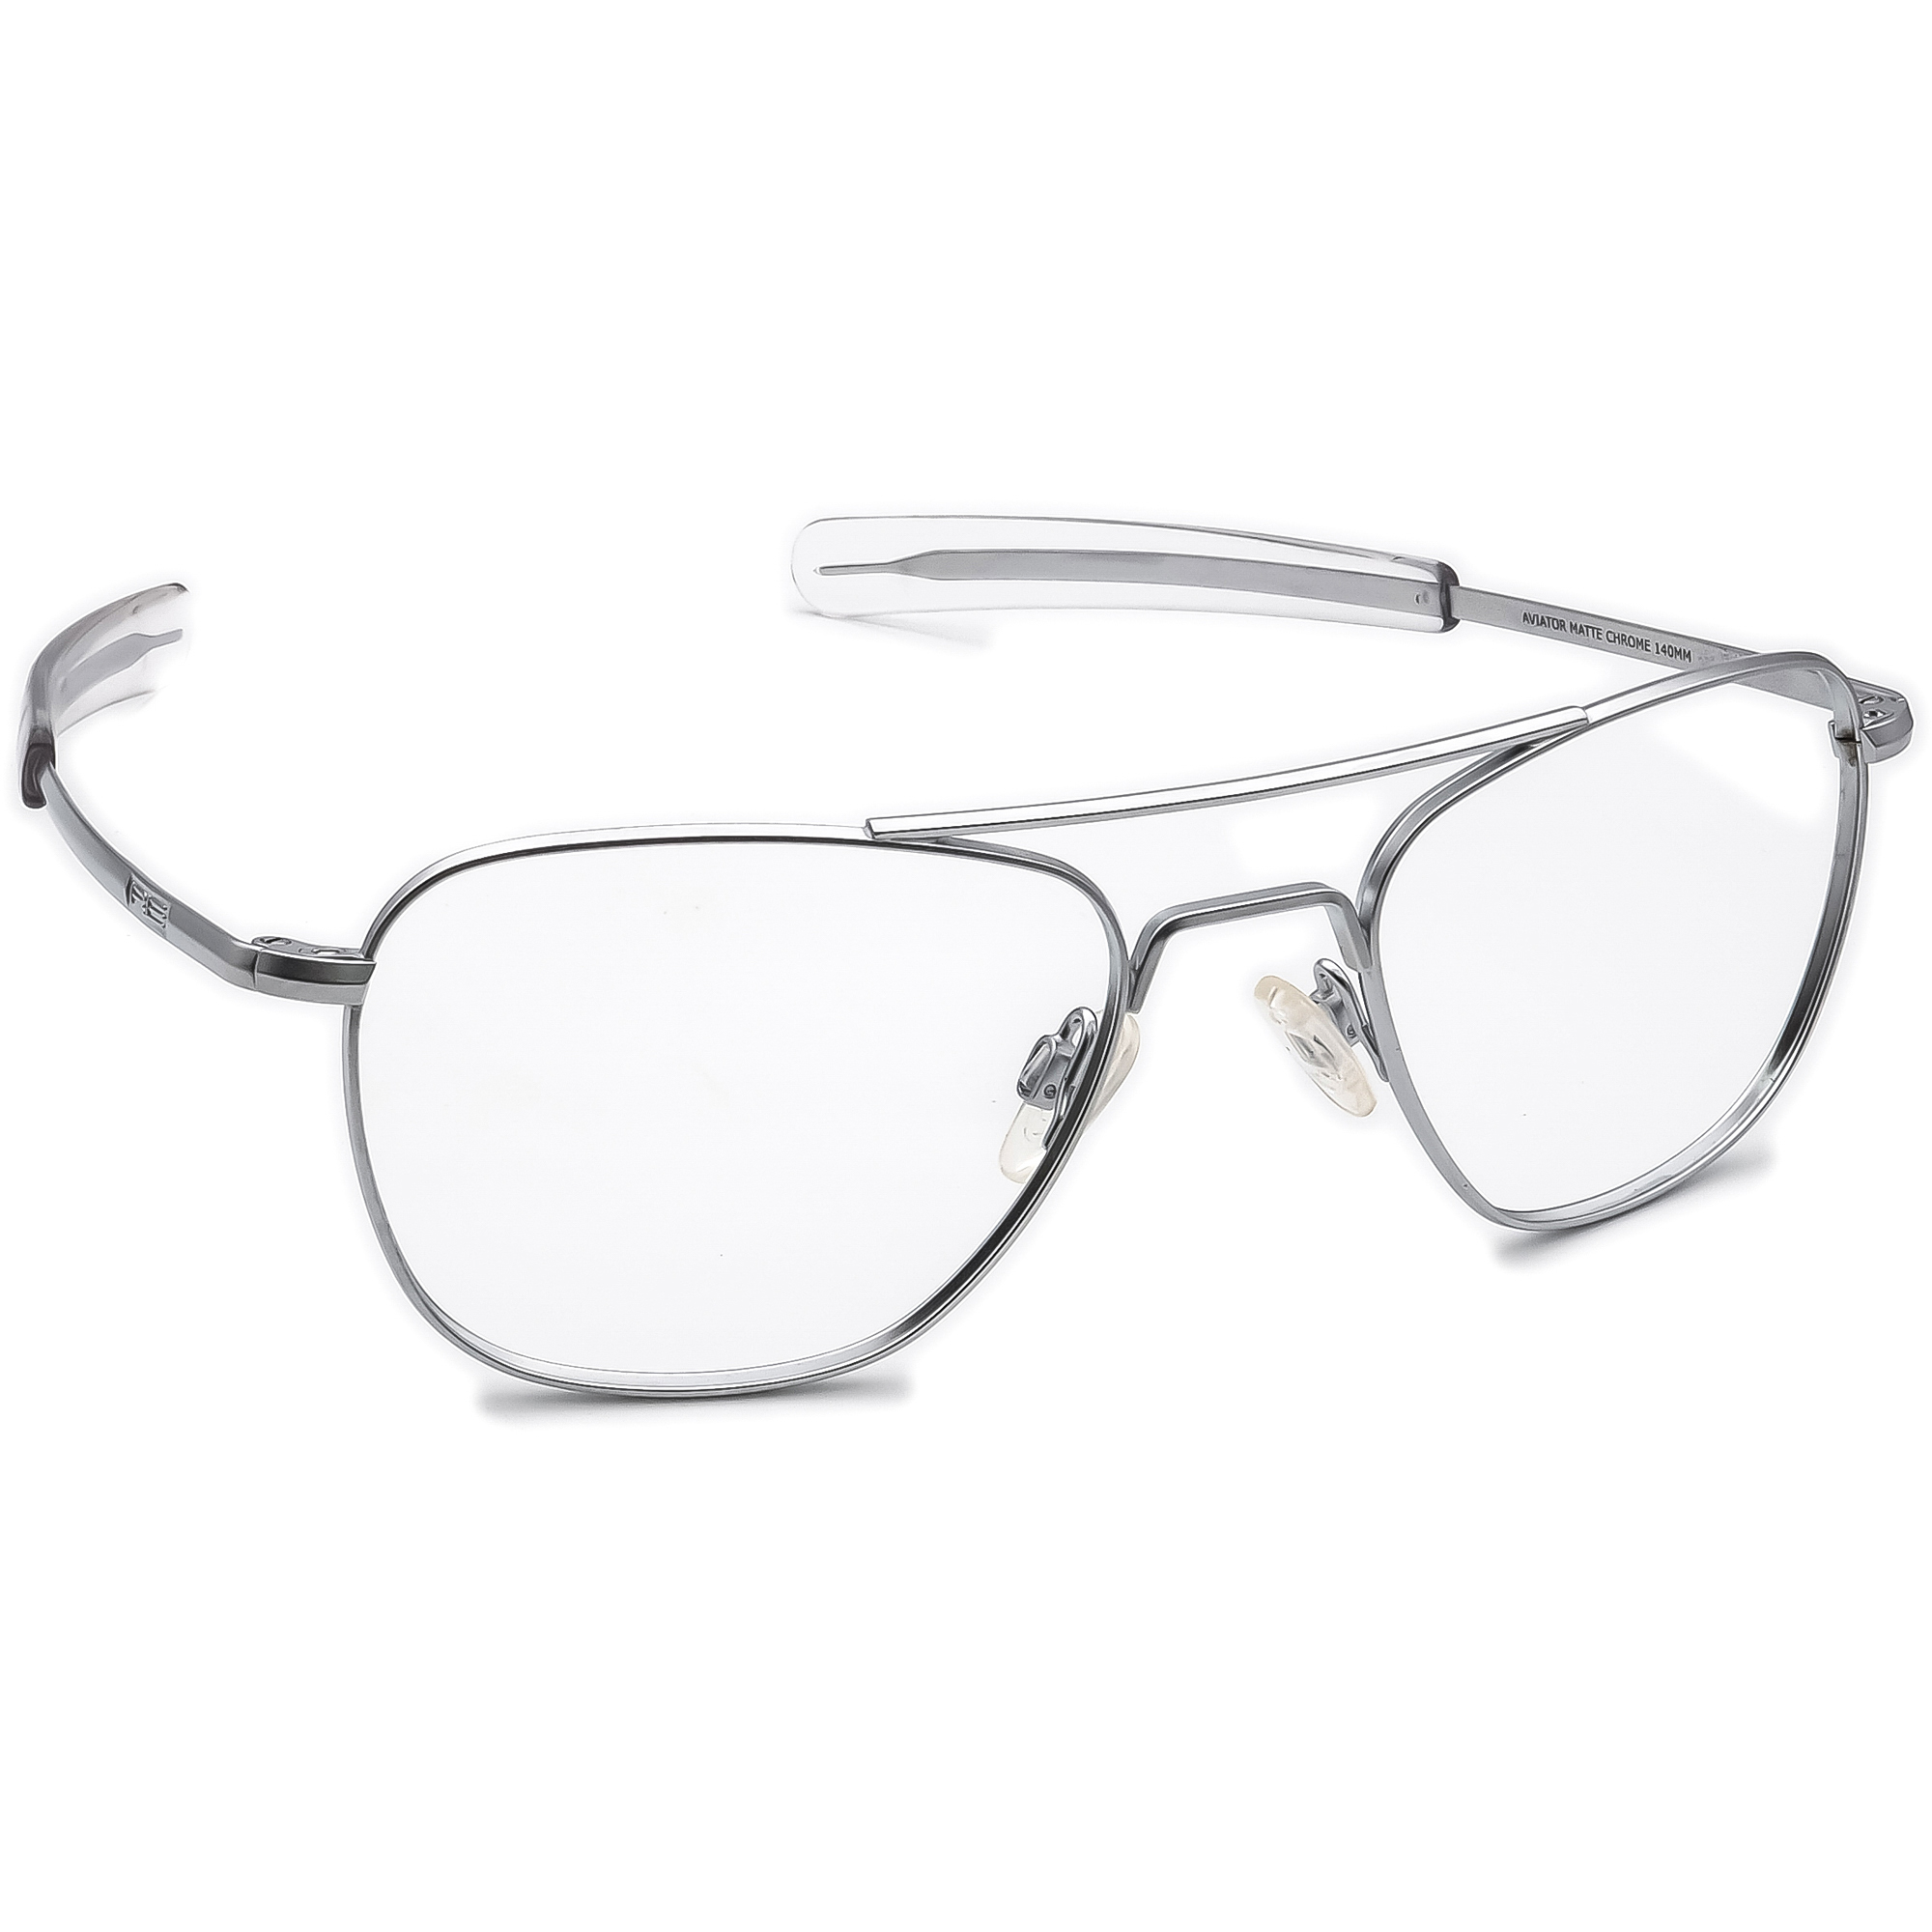 Randolph Engineering Aviator Matte Chrome